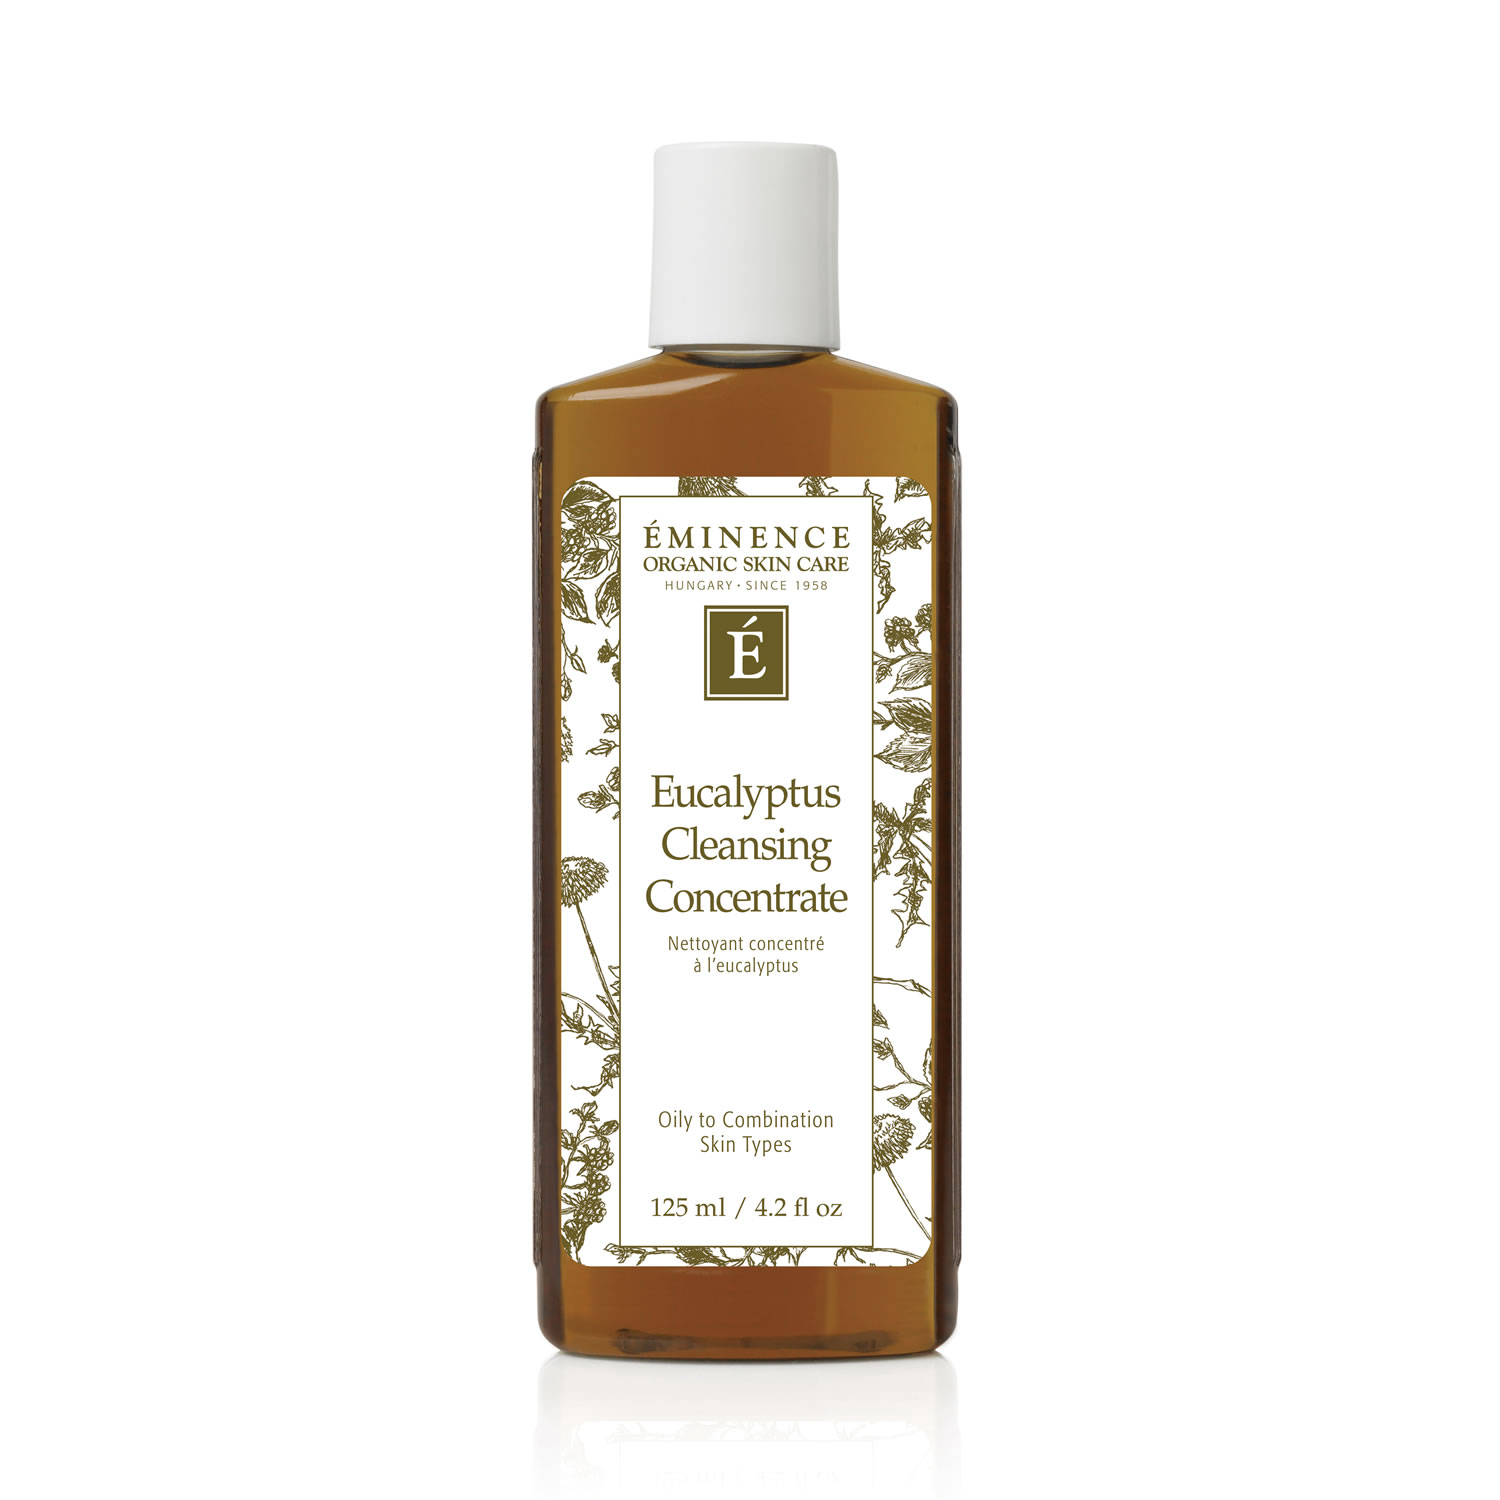 Eminence Eucalyptus Cleansing Concentrate (125 ml / 4.2 fl oz)